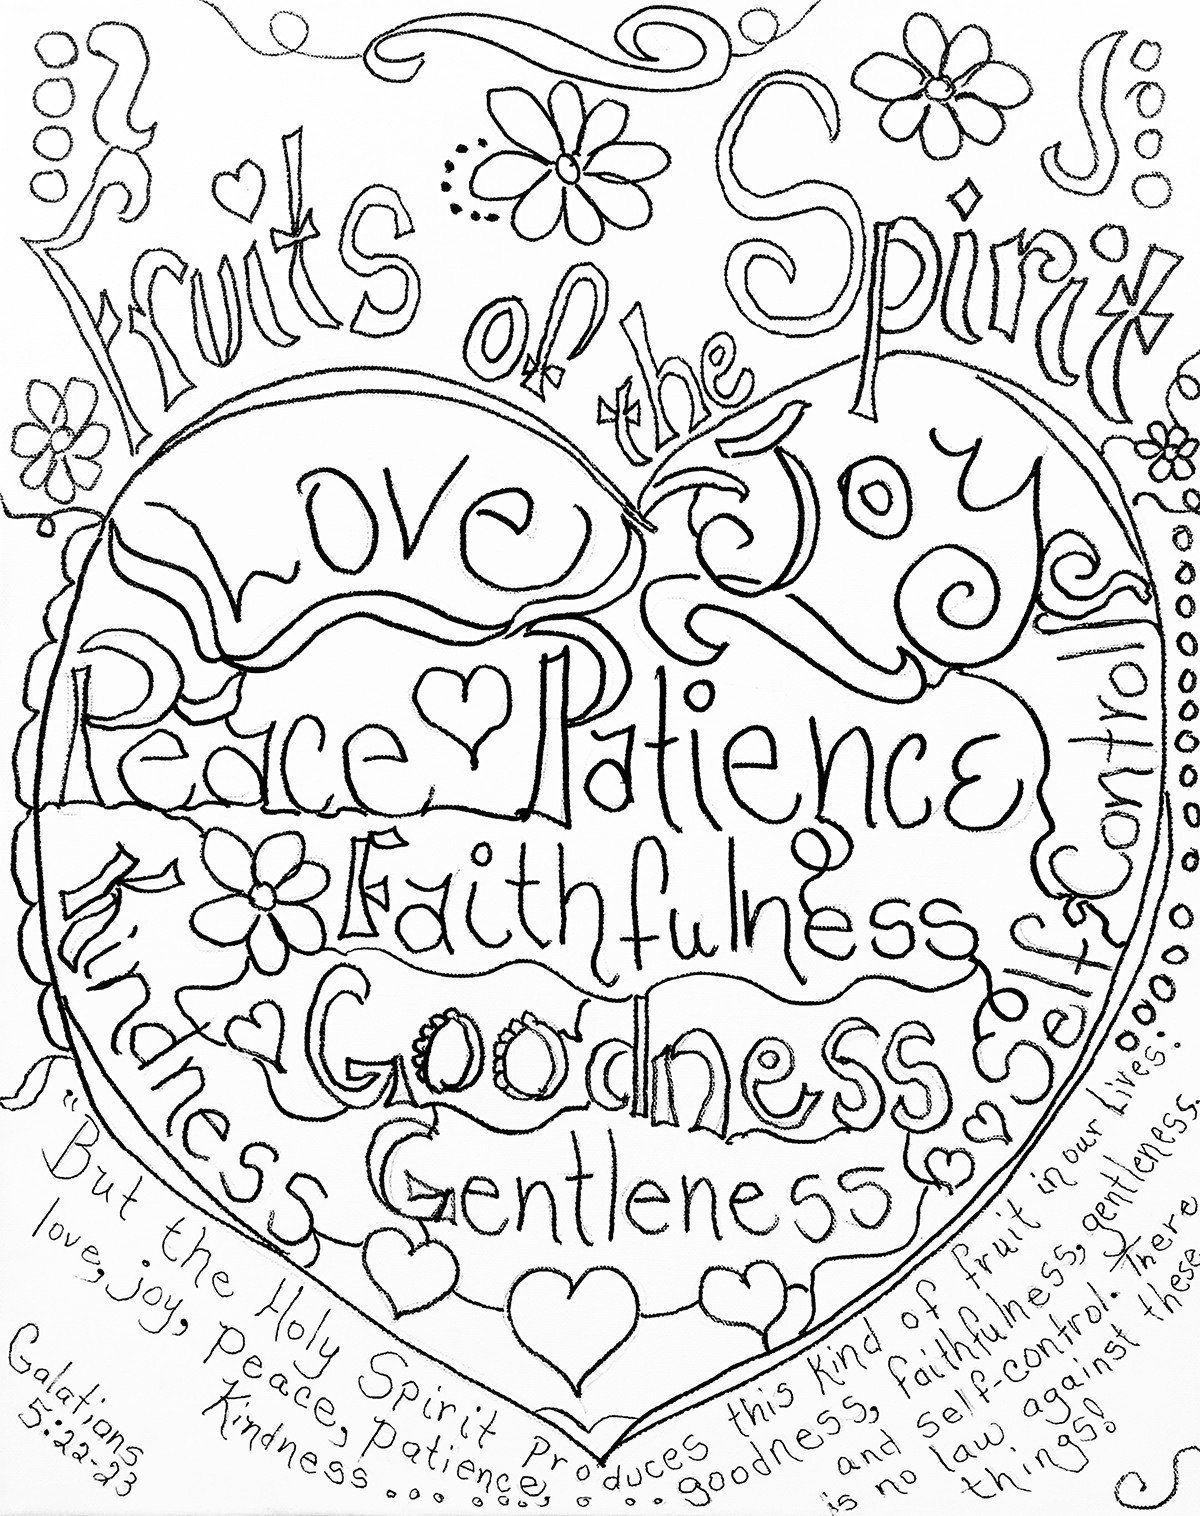 Fruit Of The Spirit Coloring Pages Beautiful Holy Spirit Coloring Page Elegant Coloring Pages Qu Coloring Pages Inspirational Christian Coloring Coloring Pages